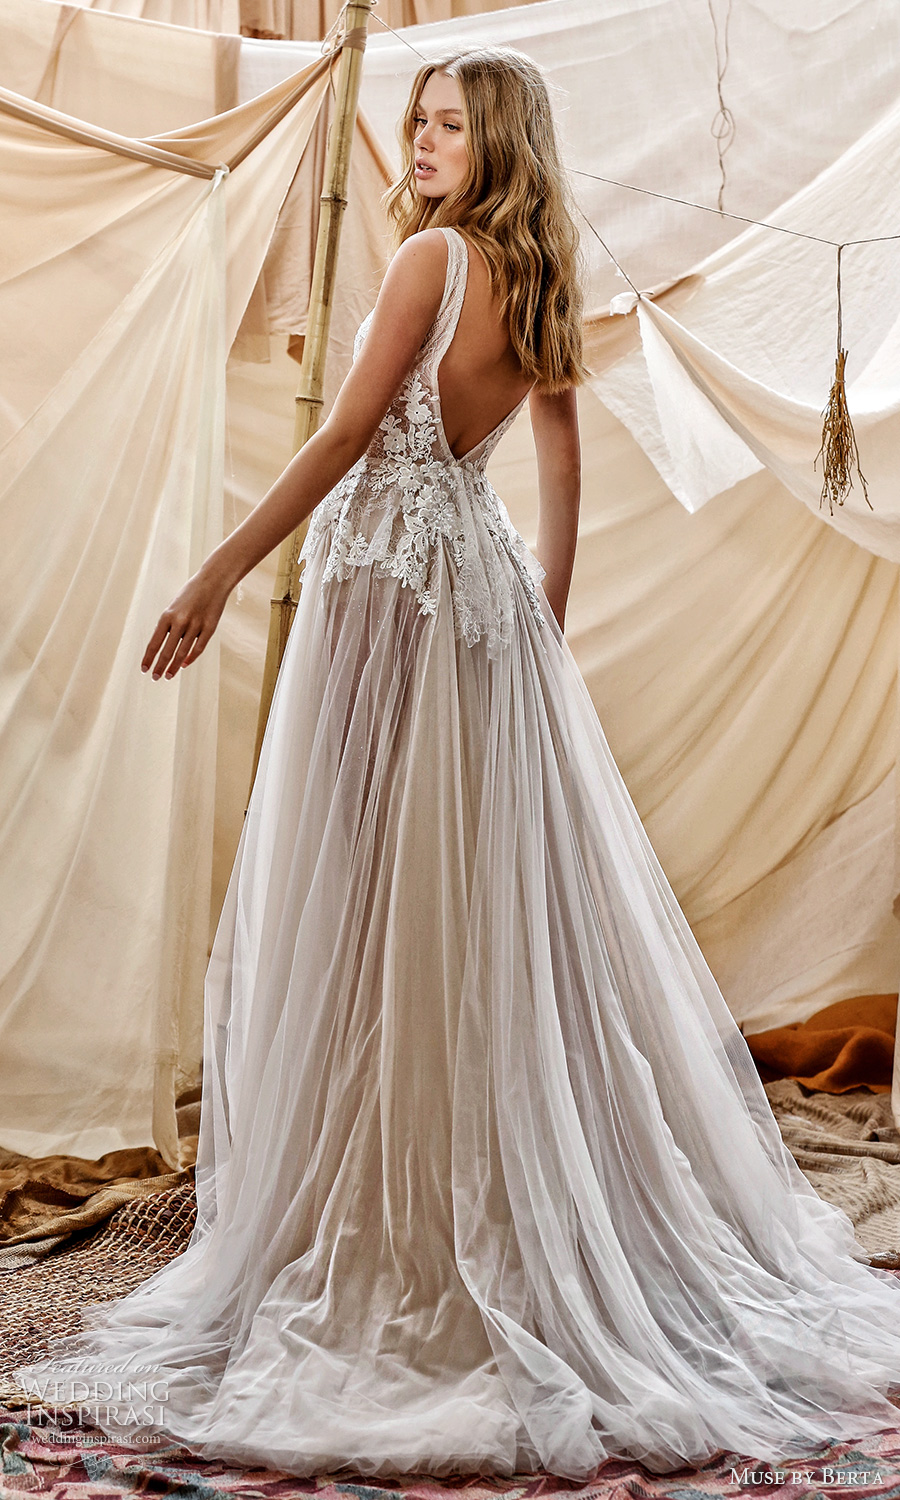 muse by berta spring 2021 bridal sleeveless straps plunging v neckling embellished lace bodice a line ball gown wedding dress chapel train v back (6) bv